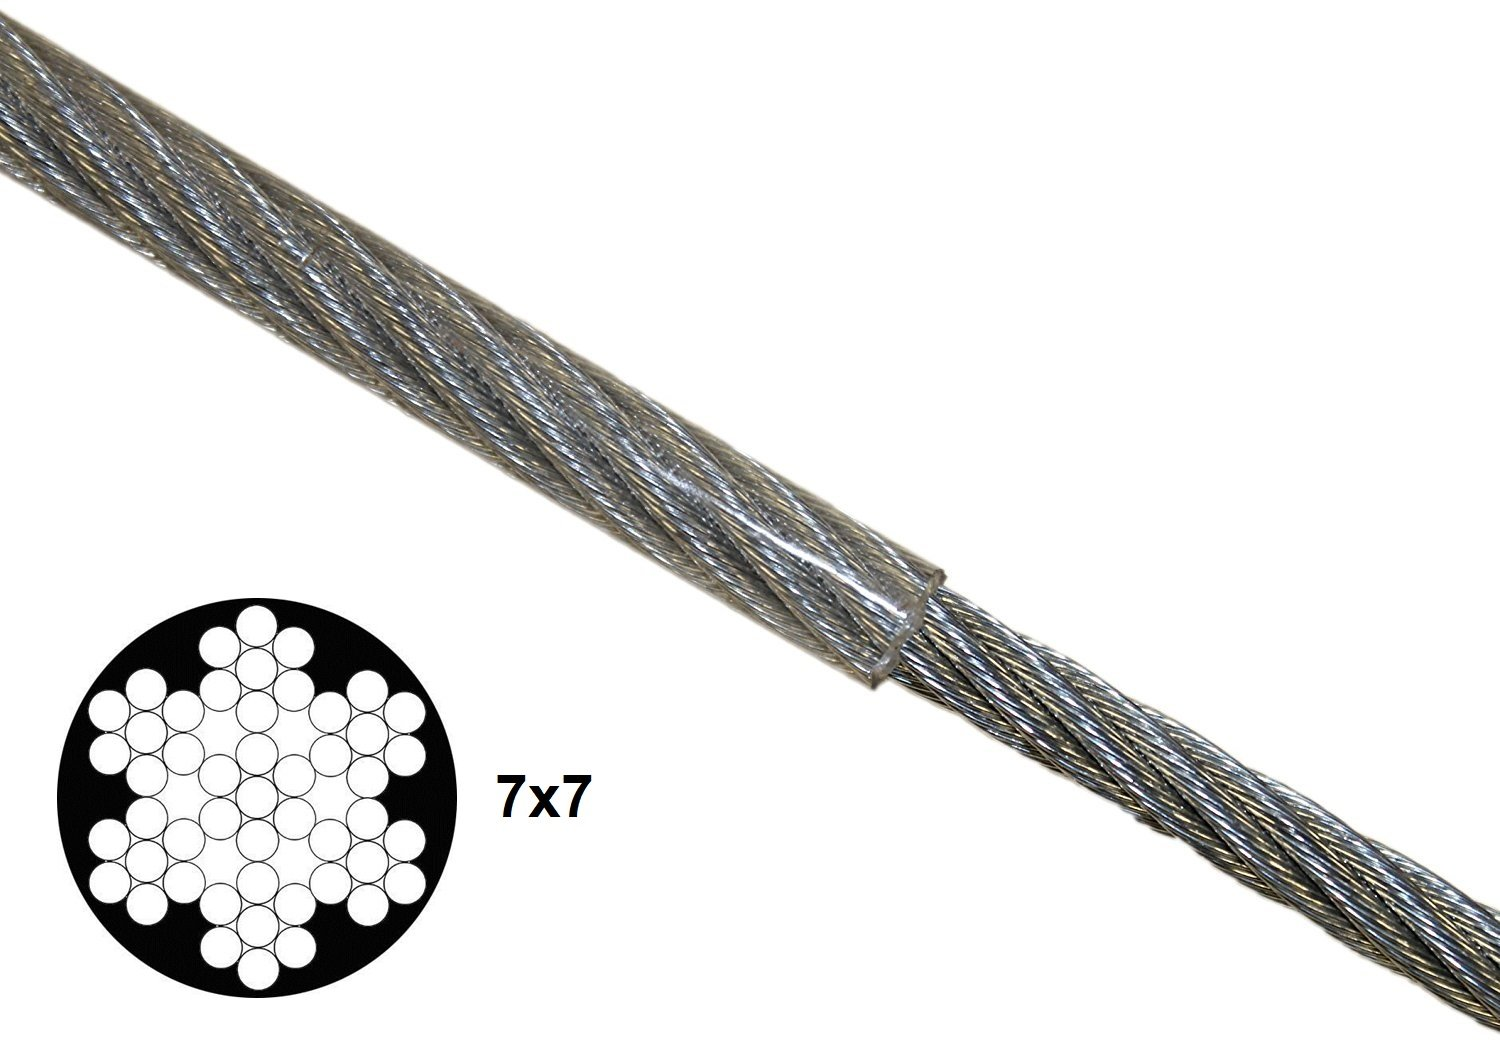 KingChain 463771 1/8'' x 3/16'' x50' Pvc-Coated Galvanized Aircraft Cable Kit by KingChain (Image #2)